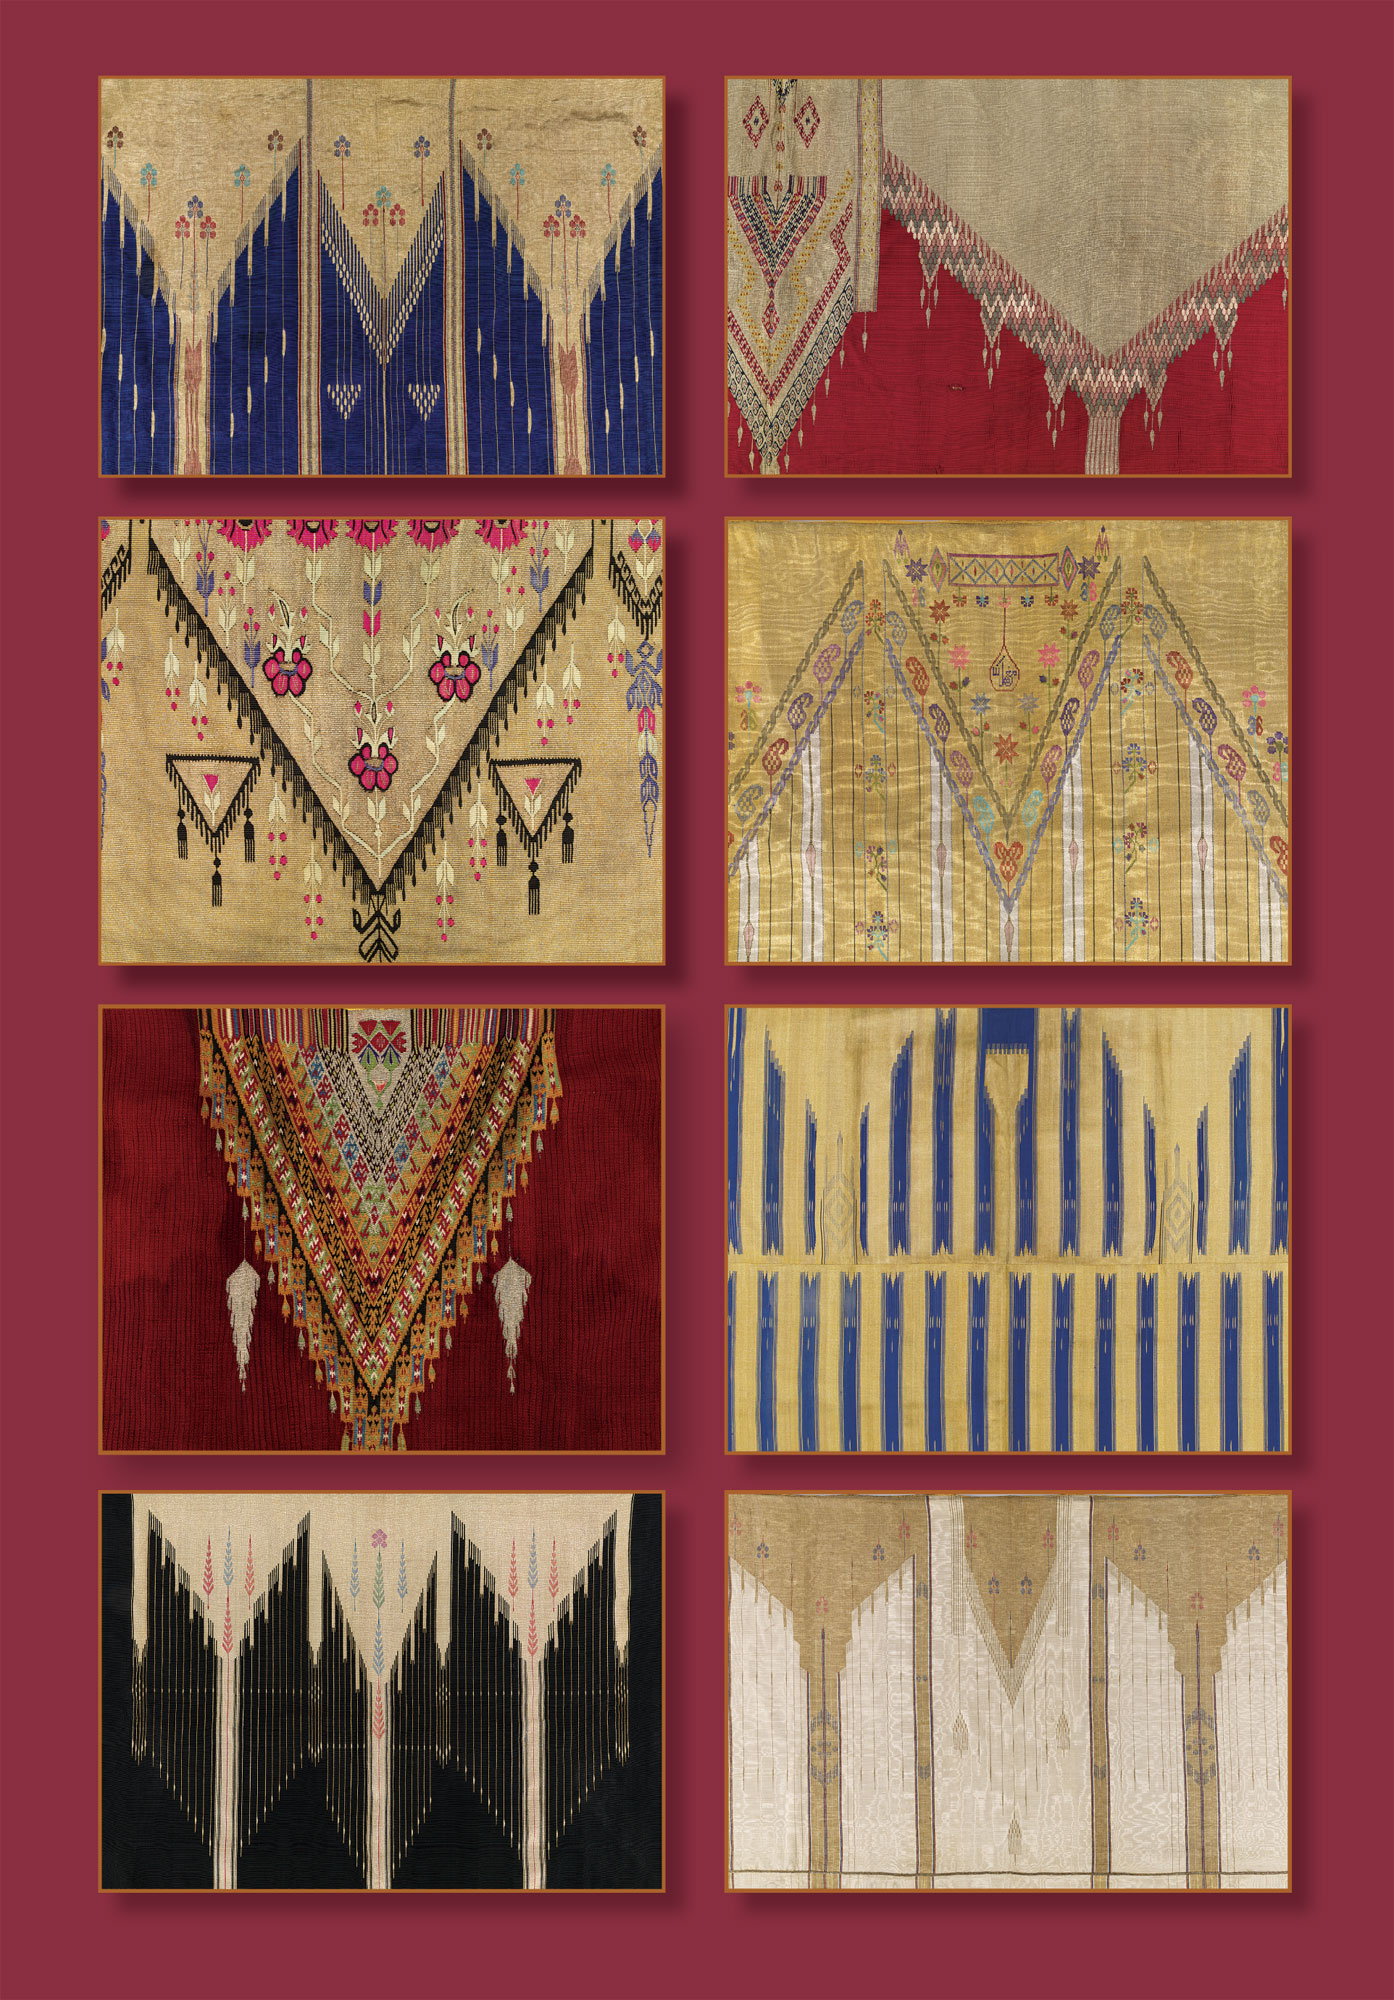 MAN'S CLOAK ( abaya ) of silk, cotton, metallic thread, weft-faced weave, slit tapestry technique, Ottoman Syria, early twentieth century. MAN'S CLOAK (abaya) of silk, cotton, metallic thread, weft-faced weave, slit tapestry technique, tablet weaving, Ottoman Syria, nineteenth century. WOMAN'S JACKET ( salteh ) of silk, cotton, metallic thread, weft-faced weave, slit tapestry technique, Ottoman Syria, late nineteenth to early twentieth century. MAN'S CLOAK (abaya) of silk, cotton, metallic thread, weft-faced weave, slit tapestry technique, early twentieth century. MAN'S COAT ( damir ) of wool, cotton, metallic thread, weft-faced weave, toothed tapestry technique, Bedouin peoples, Aleppo, Ottoman Syria, late nineteenth to early twentieth century. MAN'S CLOAK (abaya) of silk, cotton, metallic thread, weft-faced weave, slit tapestry technique, early twentieth century. MAN'S CLOAK (abaya) of silk, cotton, metallic thread, weft-faced weave, slit tapestry technique, early to mid-twentieth century. MAN'S CLOAK (abaya) of silk, cotton, metallic thread, weft-faced weave, slit tapestry technique, early twentieth century.